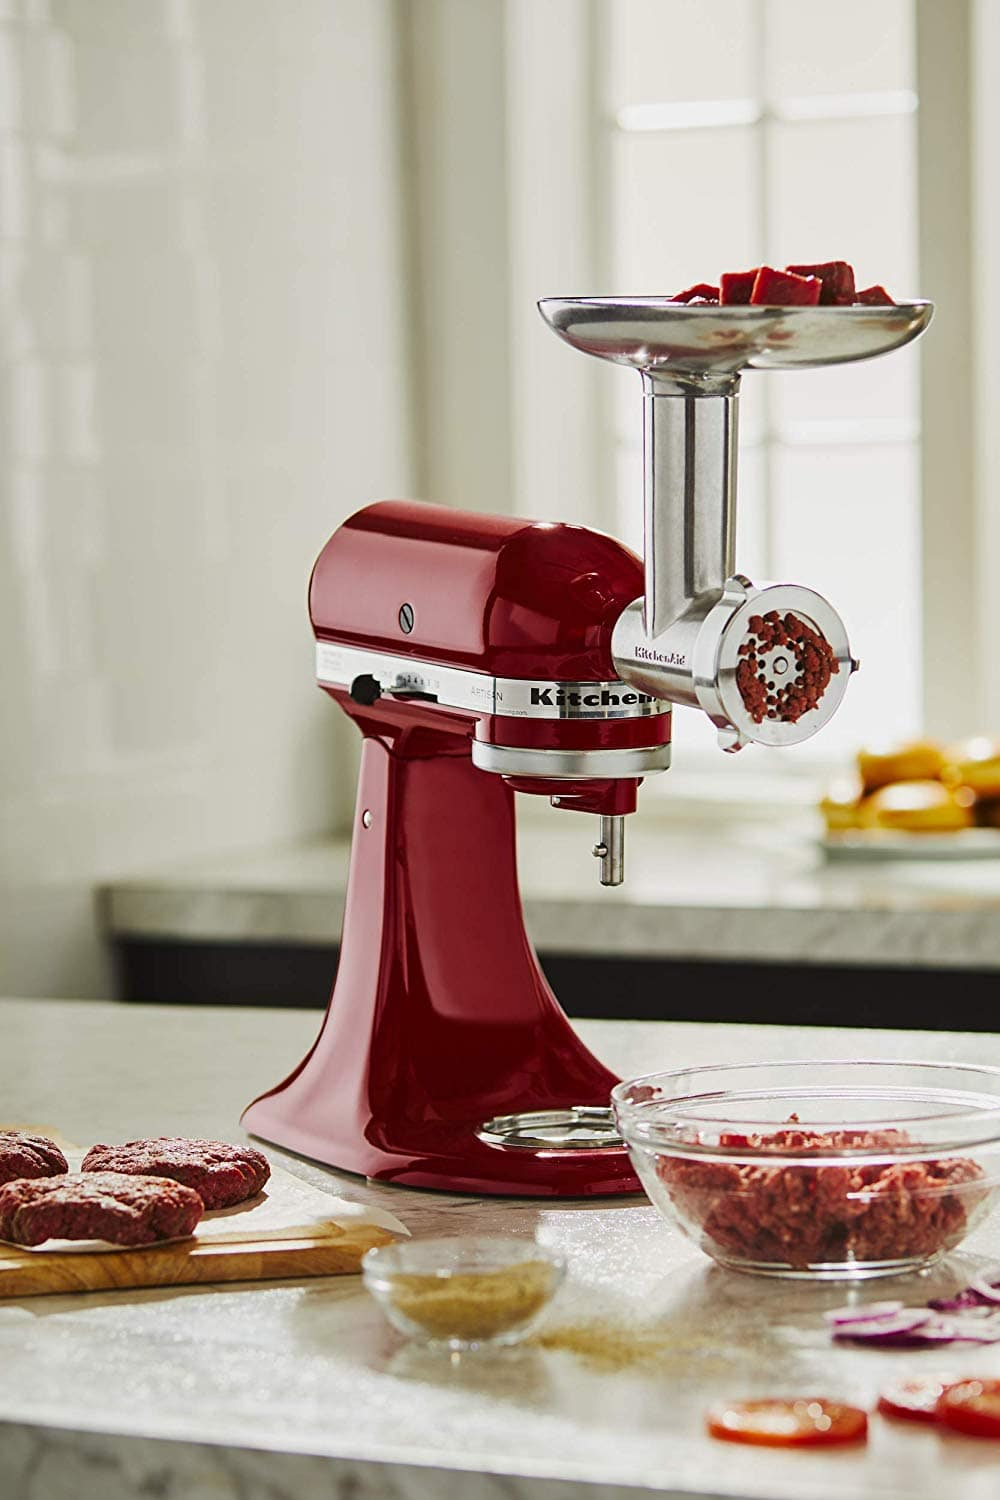 KitchenAid KSMMGA Metal Grinder Attachment $52.48